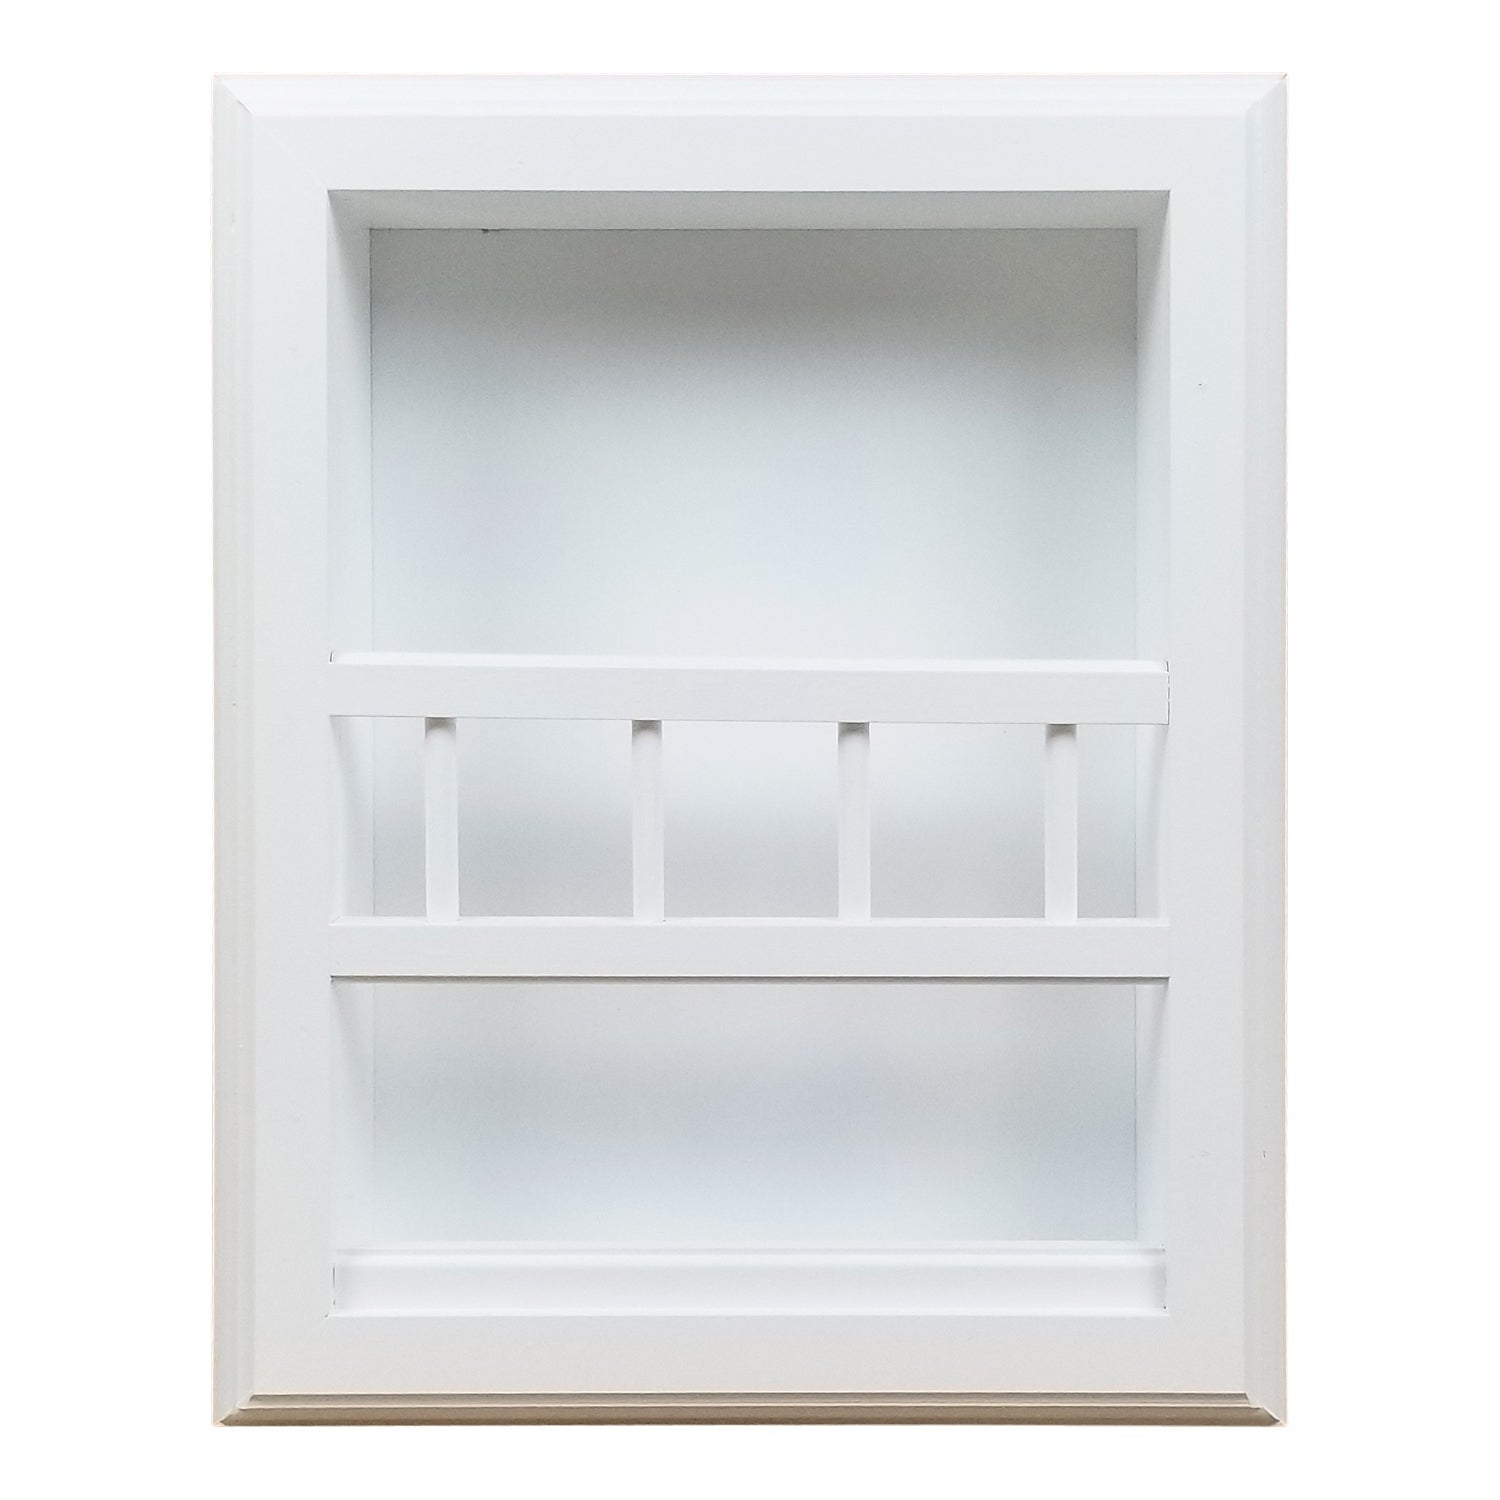 Shop Murphy Recessed White Wood Bathroom Magazine Rack Overstock 23501433